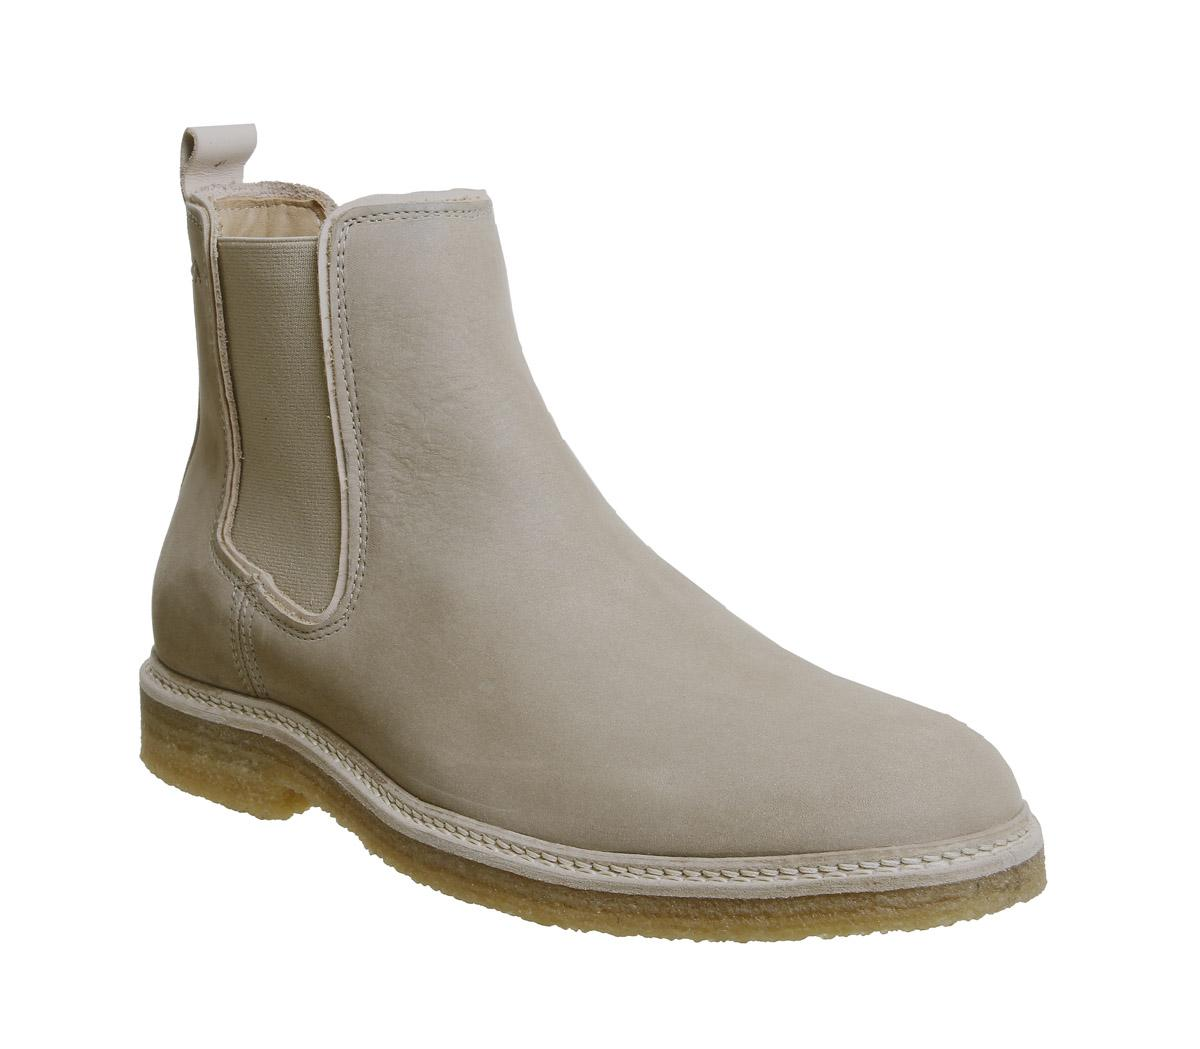 Poste For Offspring Chelsea Boots